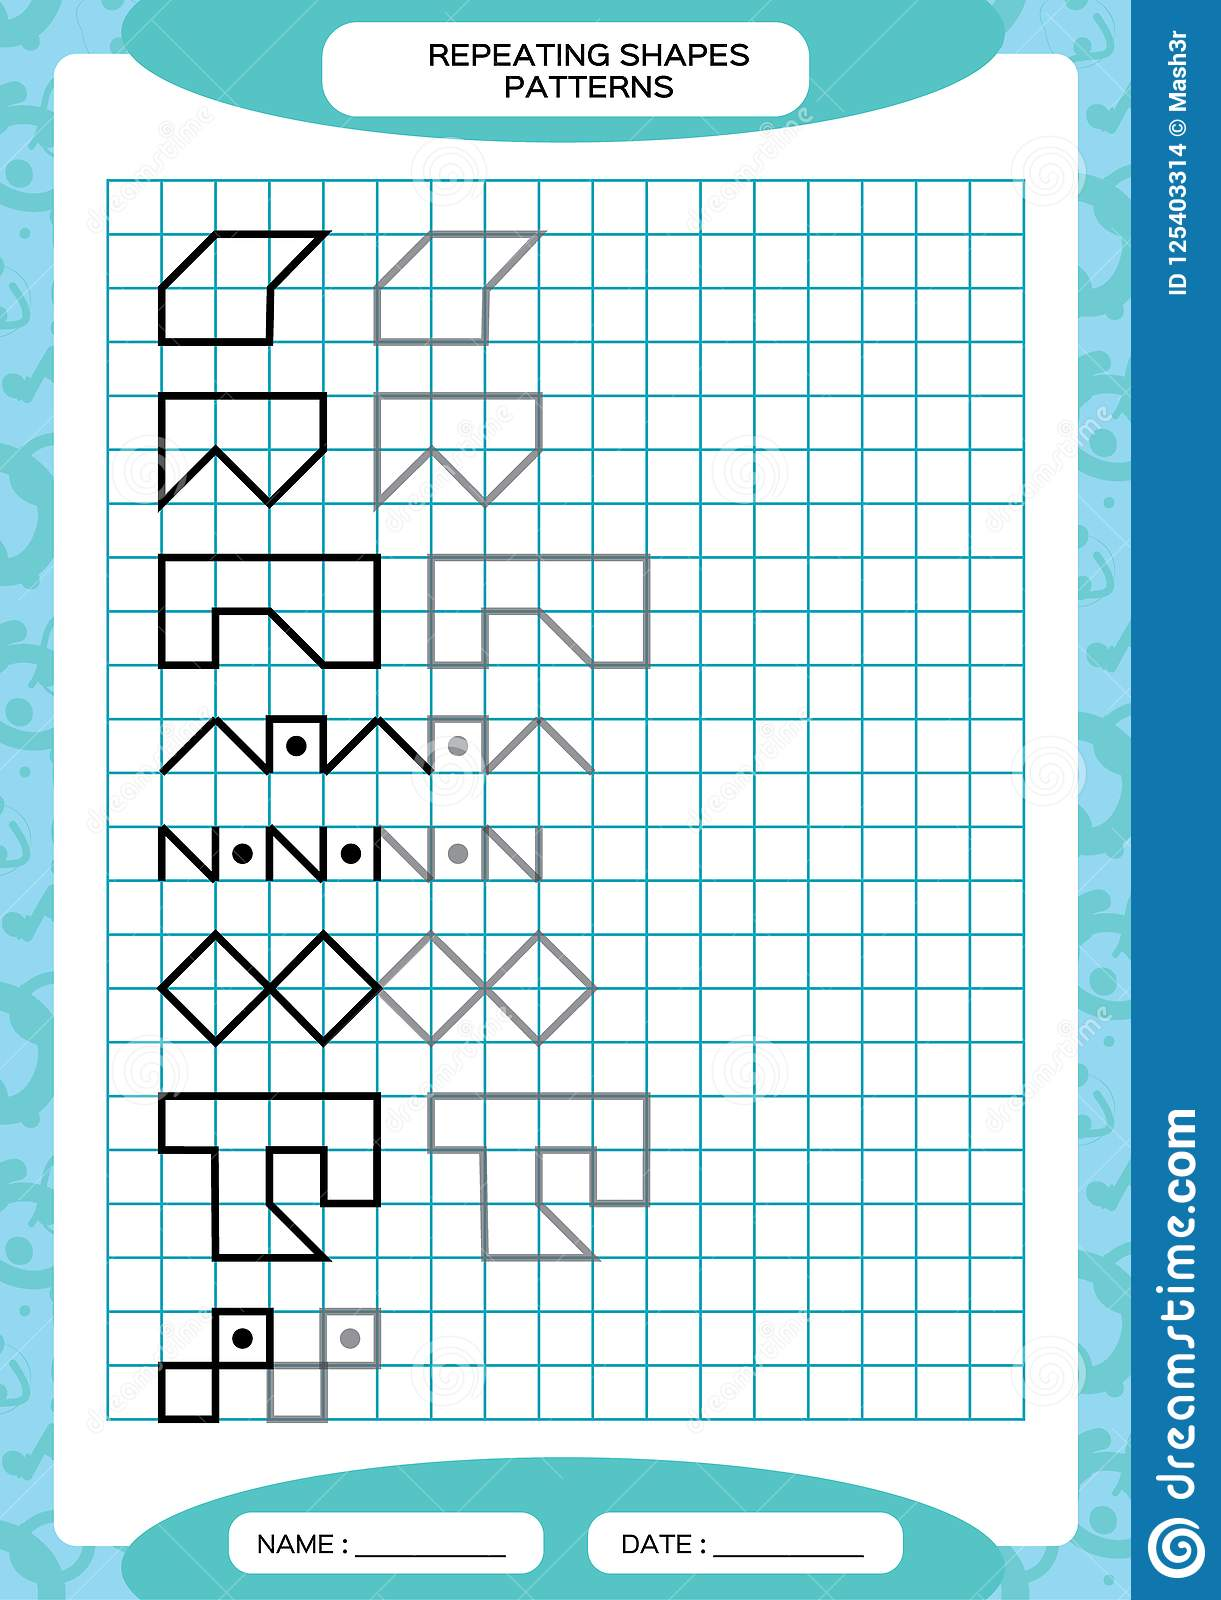 Repeat Pattern Tracing Lines Activity Special For Preschool Kids Worksheet For Practicing